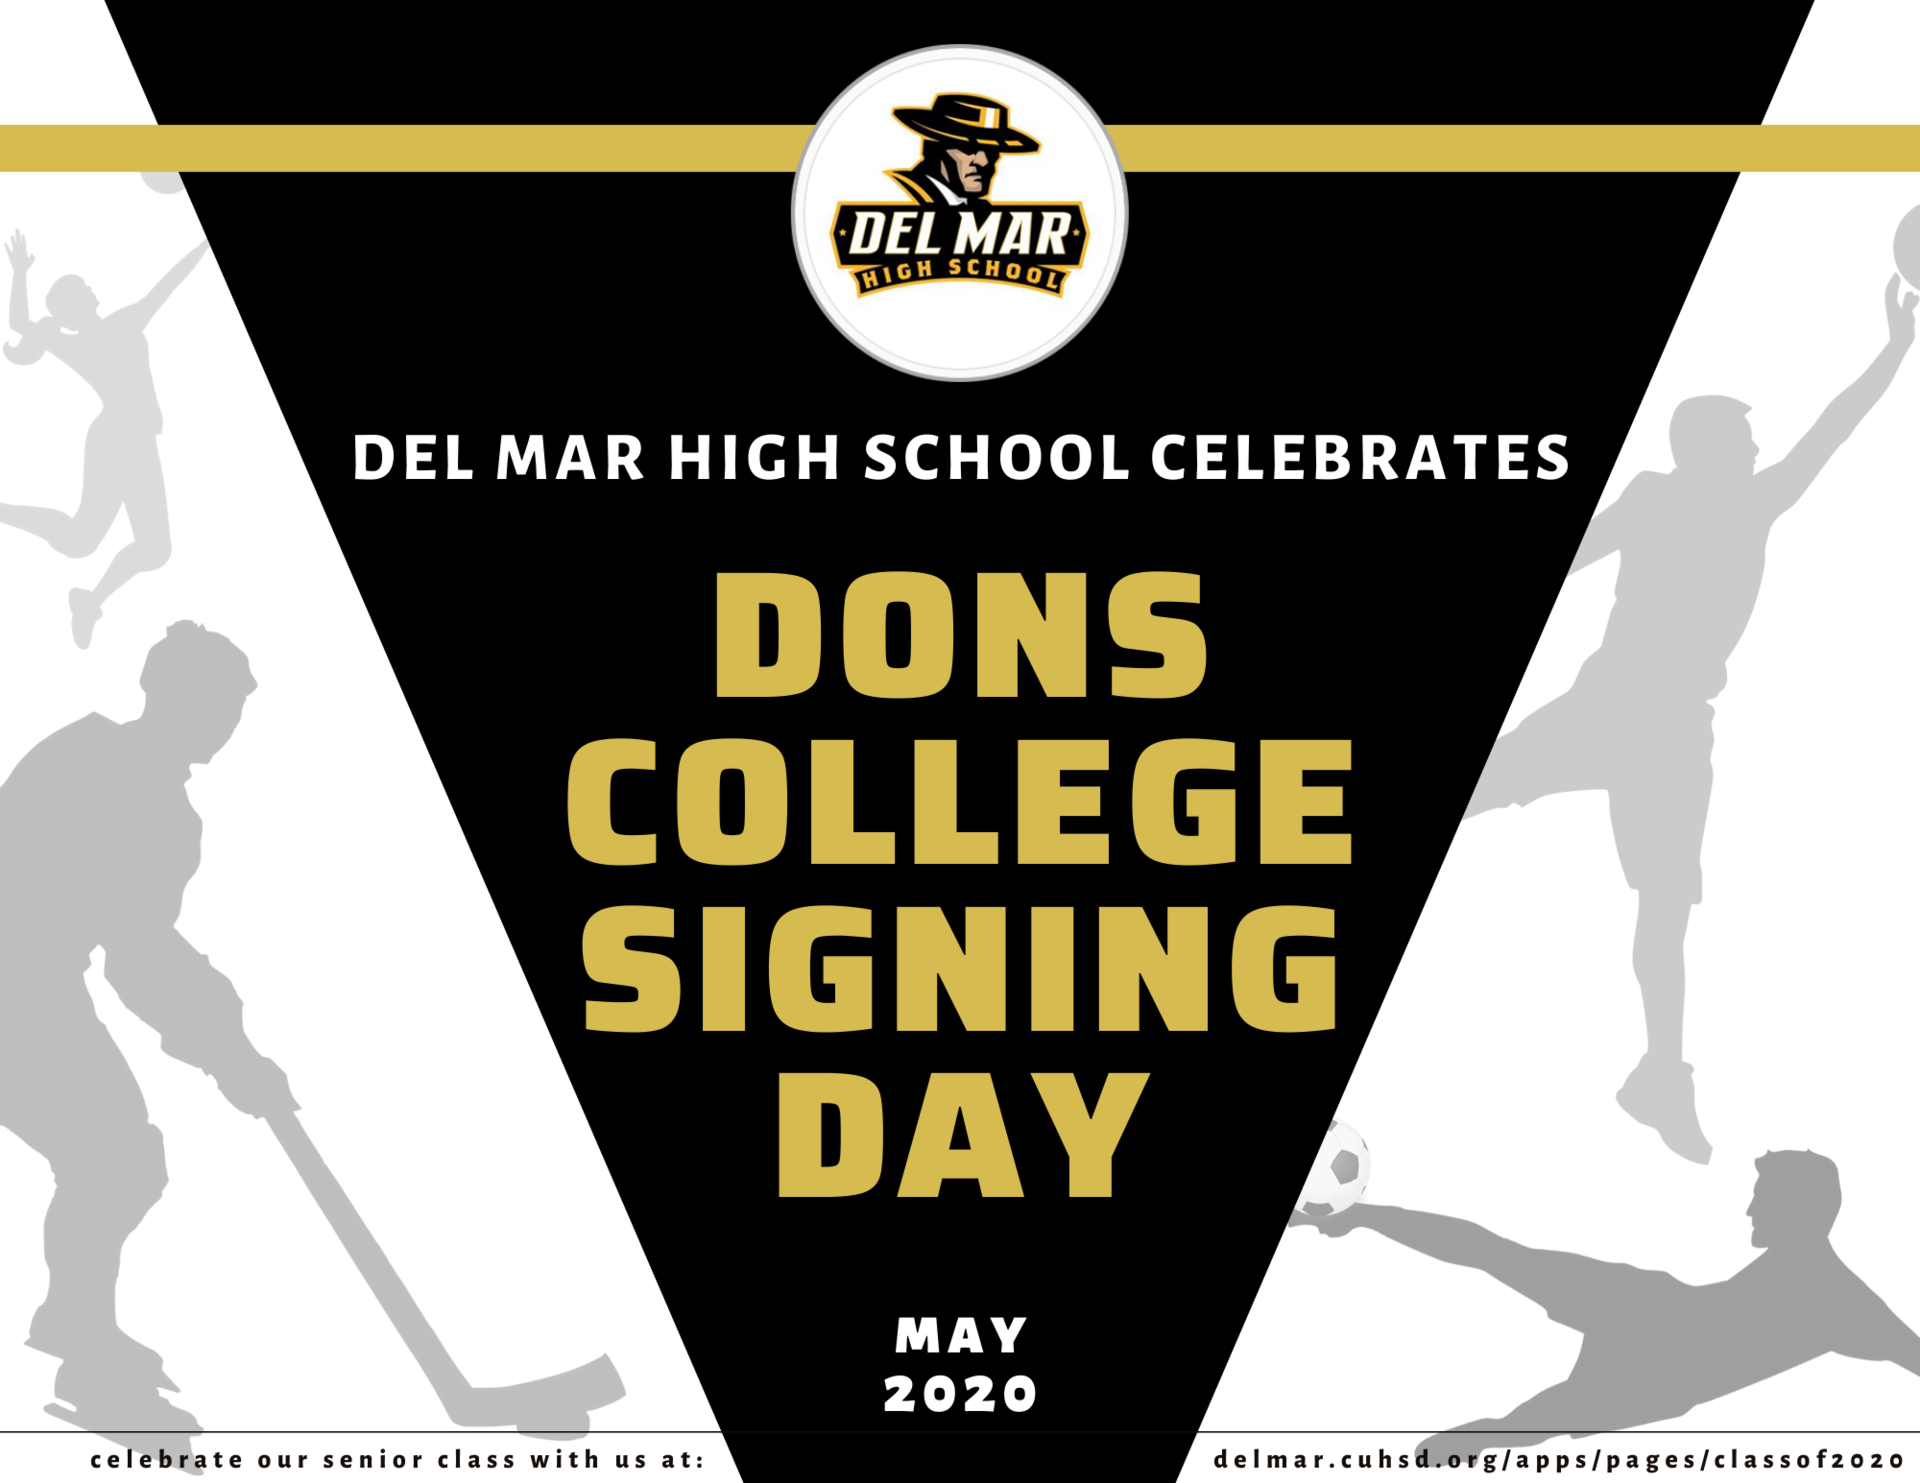 image of college signing day flyer